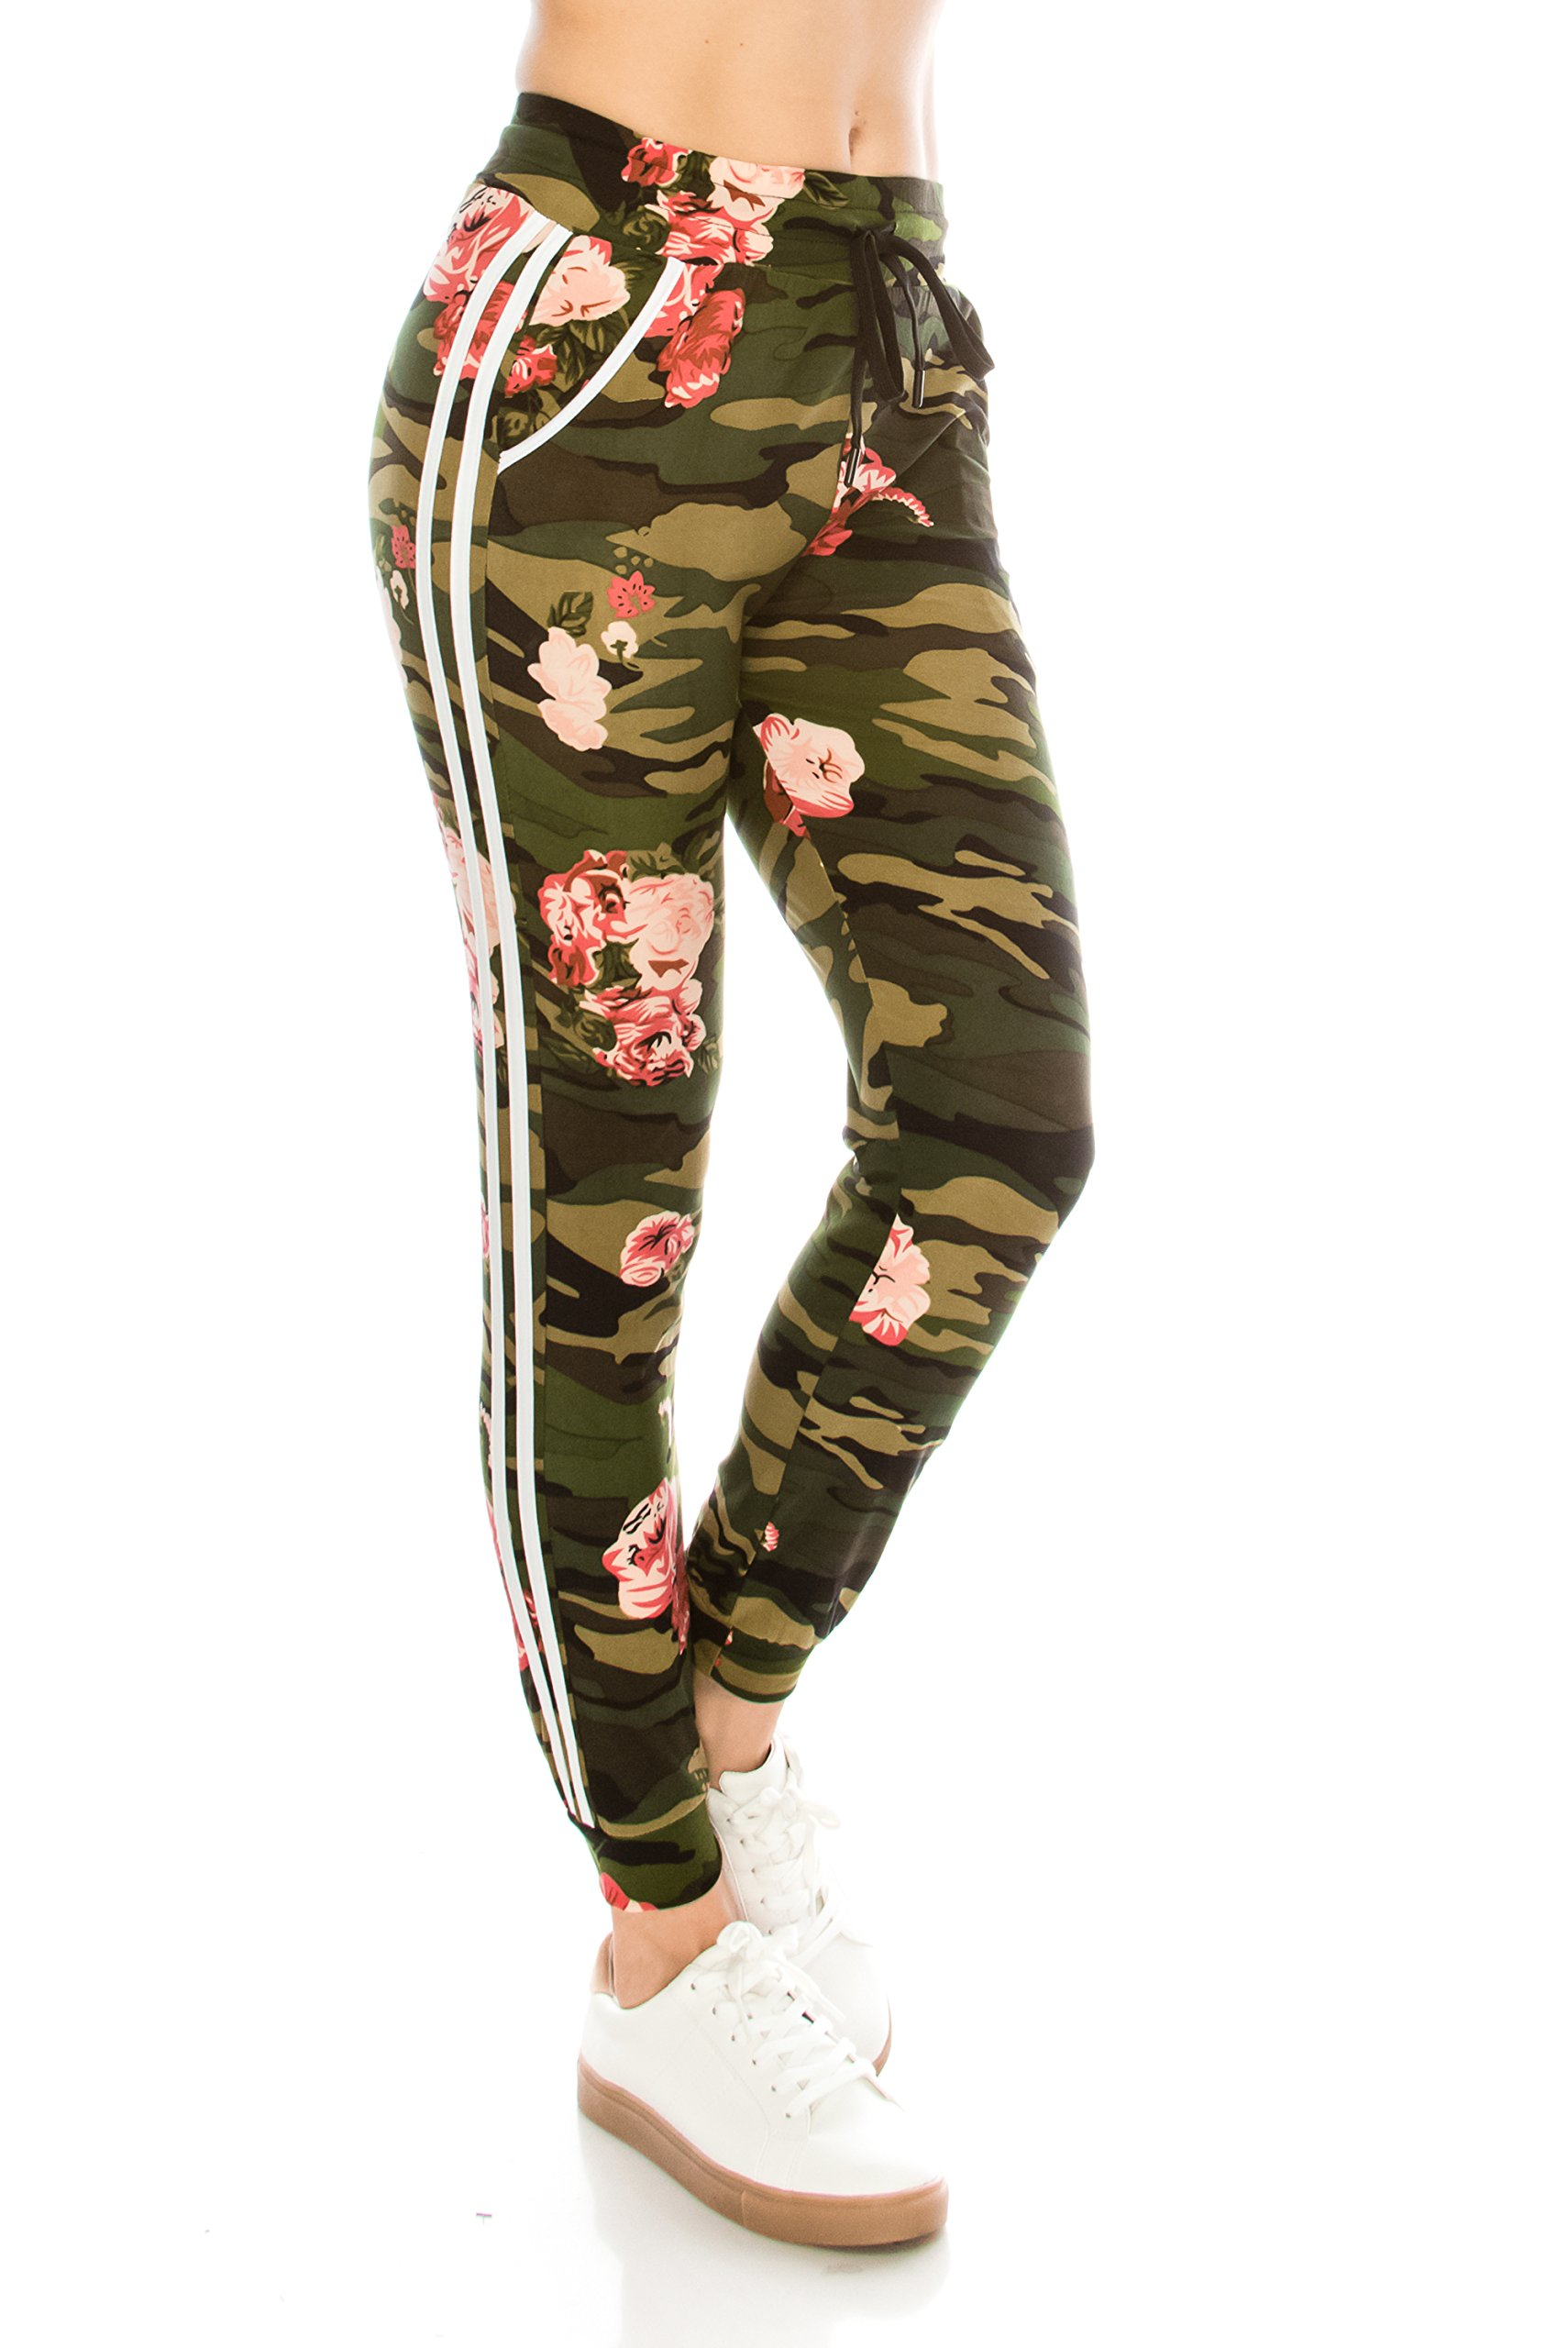 ALWAYS Women Drawstrings Jogger Sweatpants - Skinny Camo Soft Pockets Pants L/XL